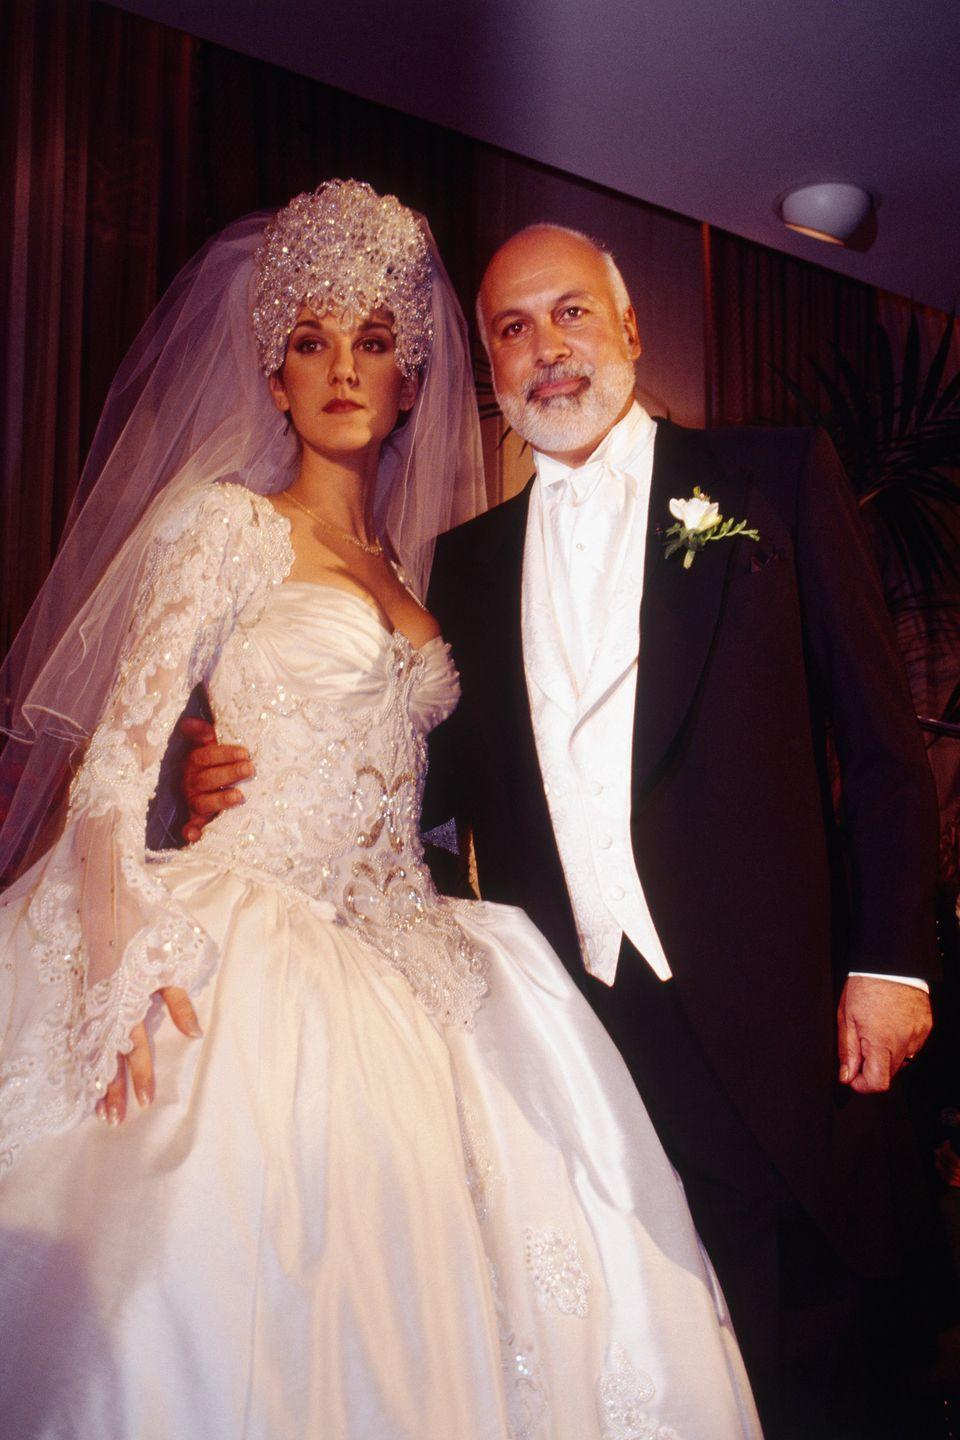 "<p>The iconic singer kicked off her marriage to her <a href=""https://www.goodhousekeeping.com/life/relationships/g3070/celine-dion-rene-angelil-romance/"" rel=""nofollow noopener"" target=""_blank"" data-ylk=""slk:manager Rene Angélil"" class=""link rapid-noclick-resp"">manager Rene Angélil</a> on December 17, 1994 wearing a breathtaking Mirella and Steve Gentile gown featuring long sleeves and a 20-foot train. The (literal) crowning glory of the look that's more divisive than the dress itself: a seven-pound headpiece.</p>"